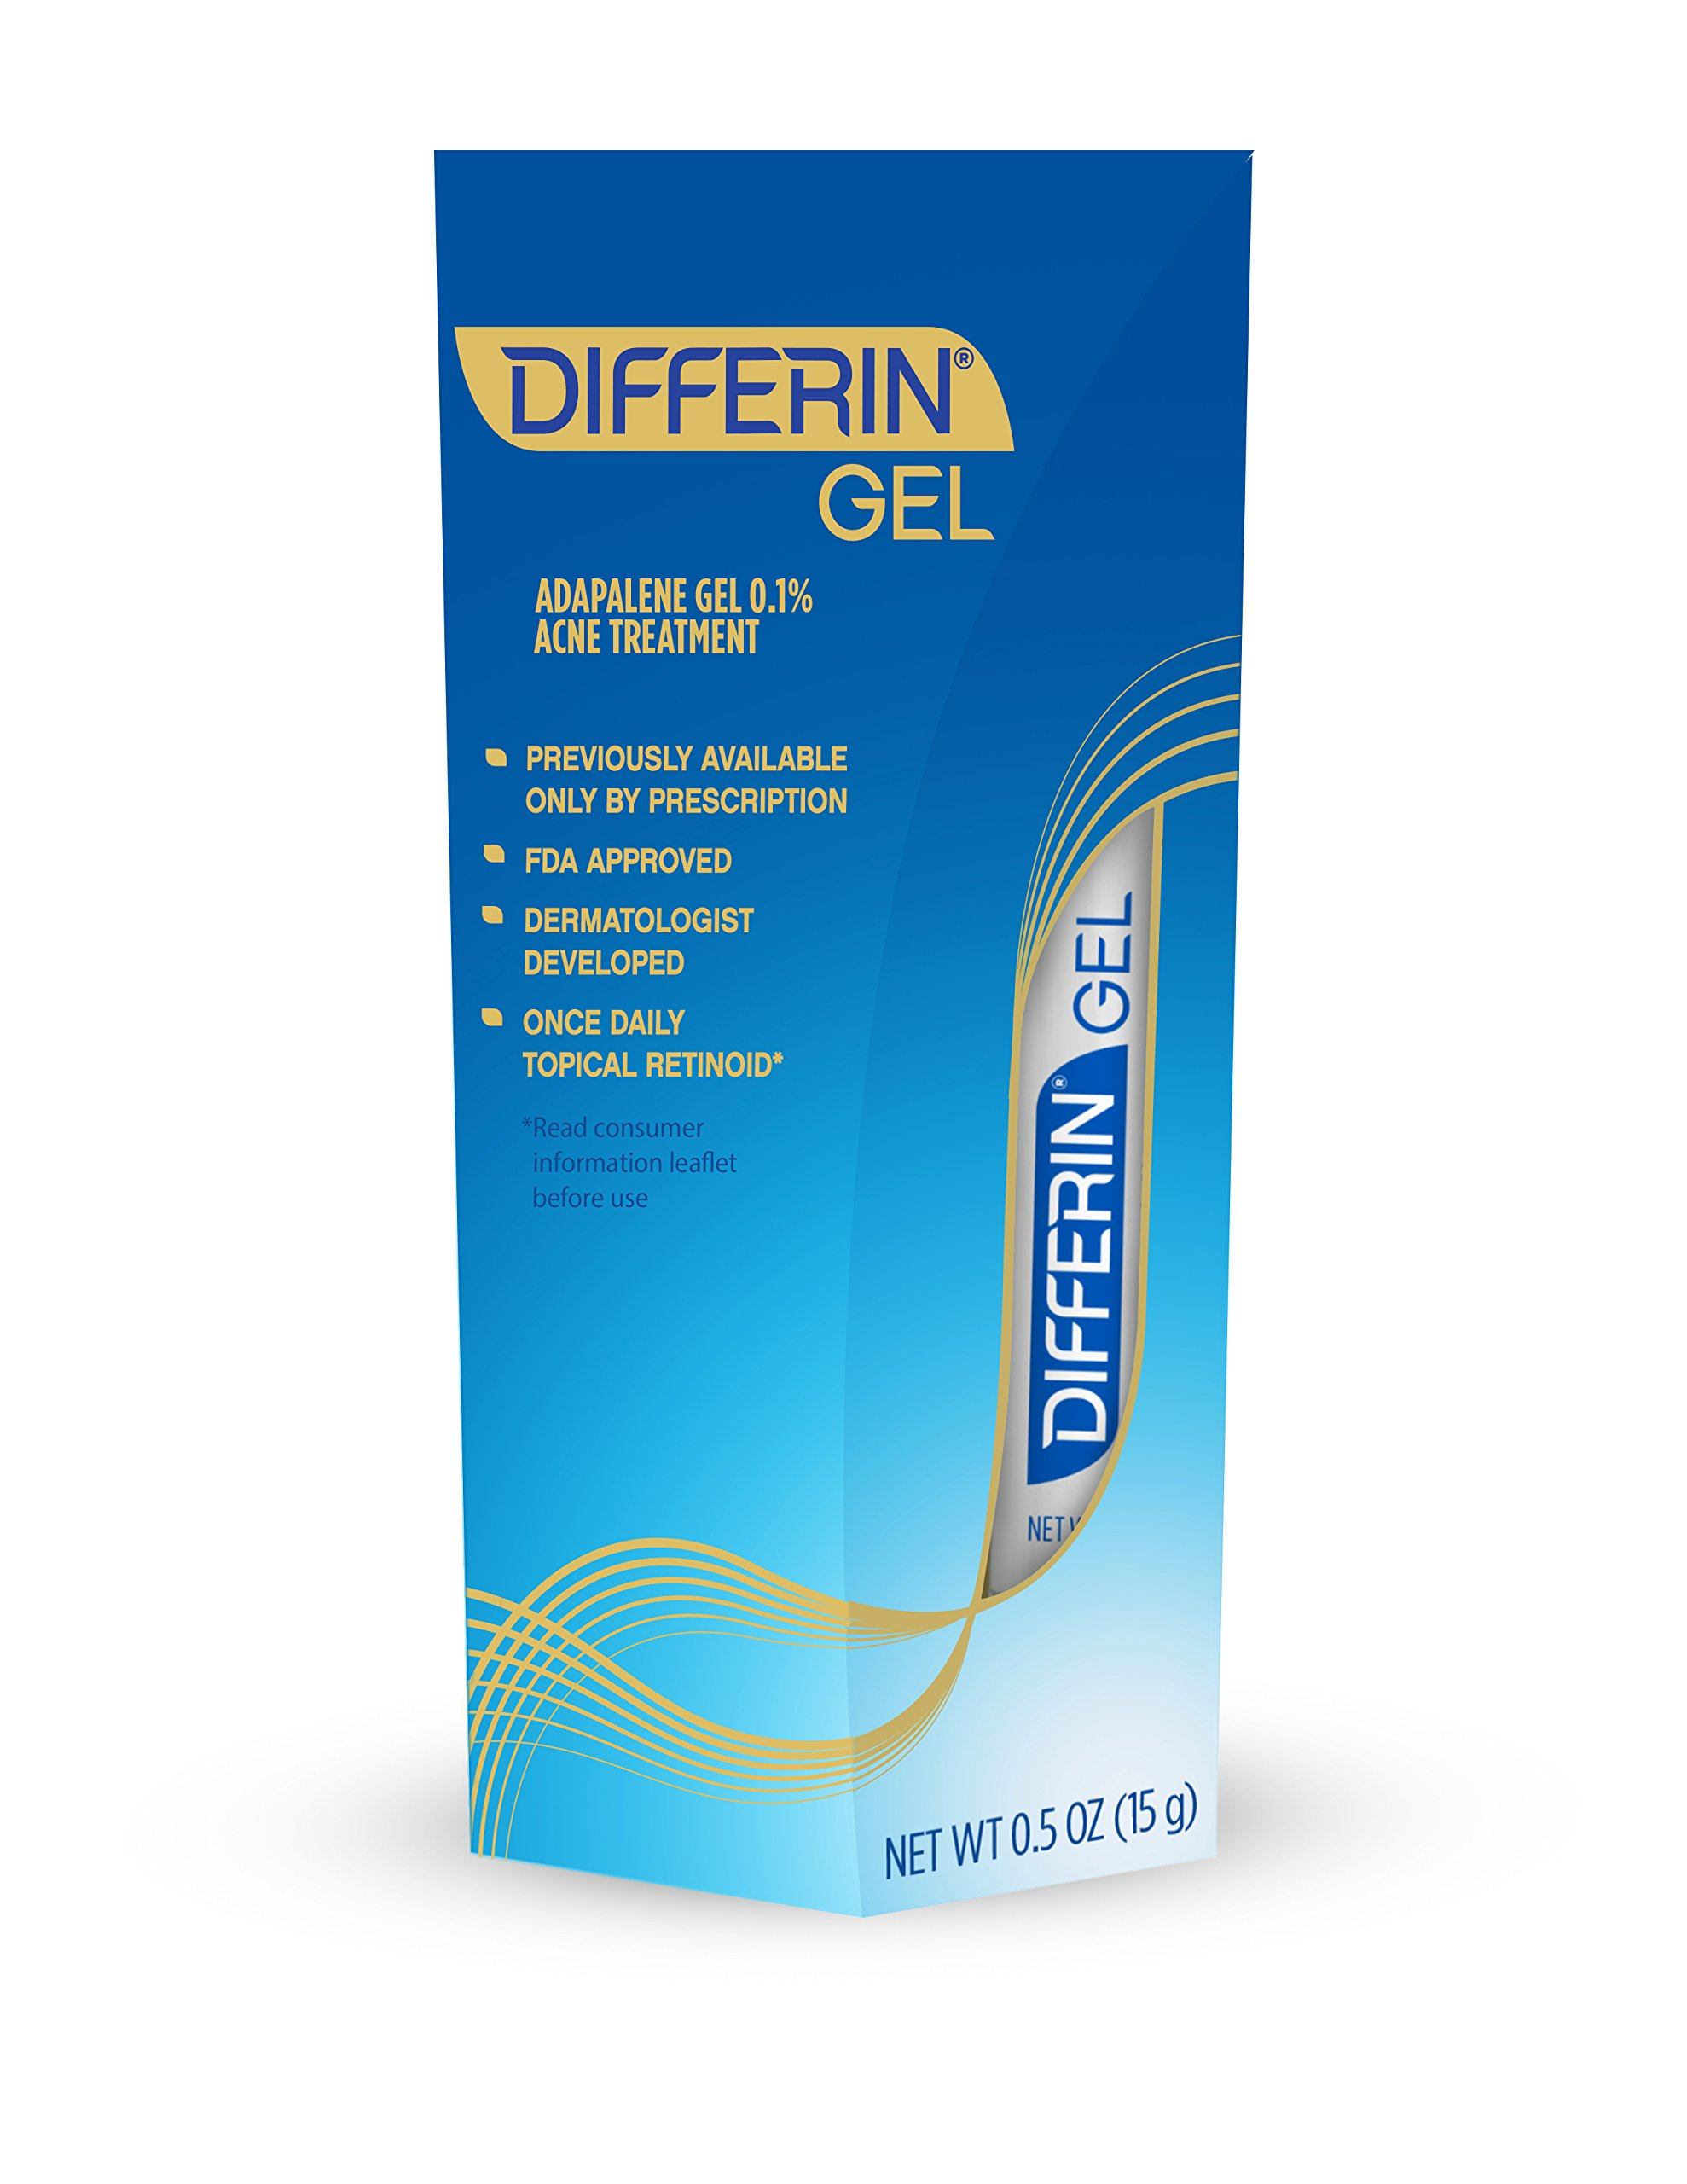 Differin Adapalene Gel 0.1% Prescription Strength Retinoid Acne Treatment (up to 30 Day supply), 15 gram